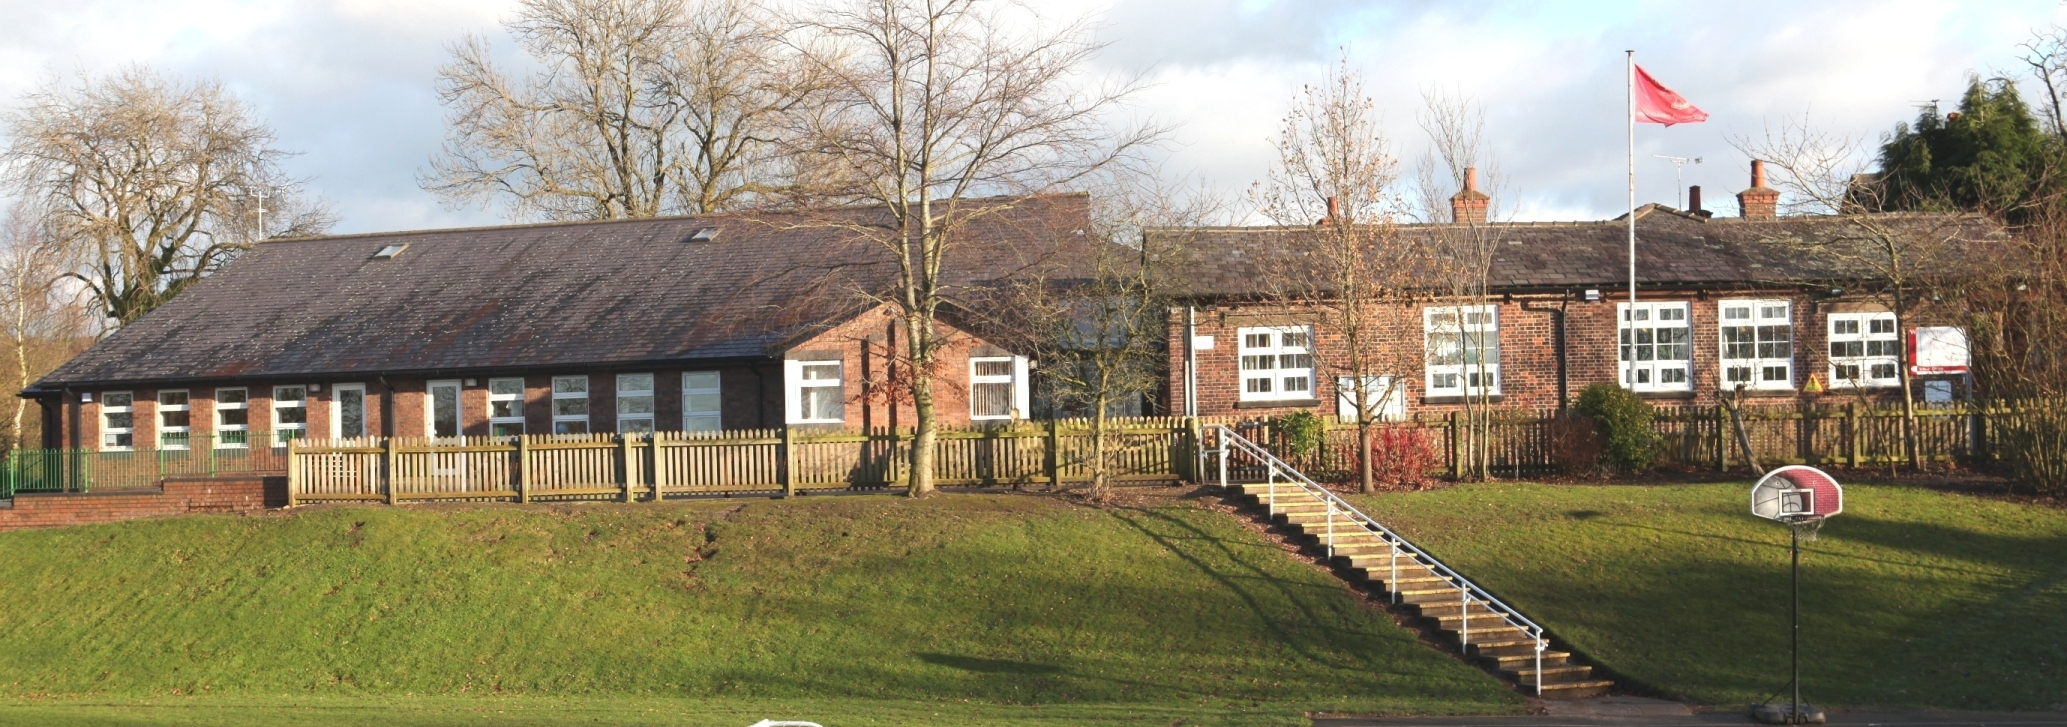 Nether Alderley Primary School Nether Alderley Parish